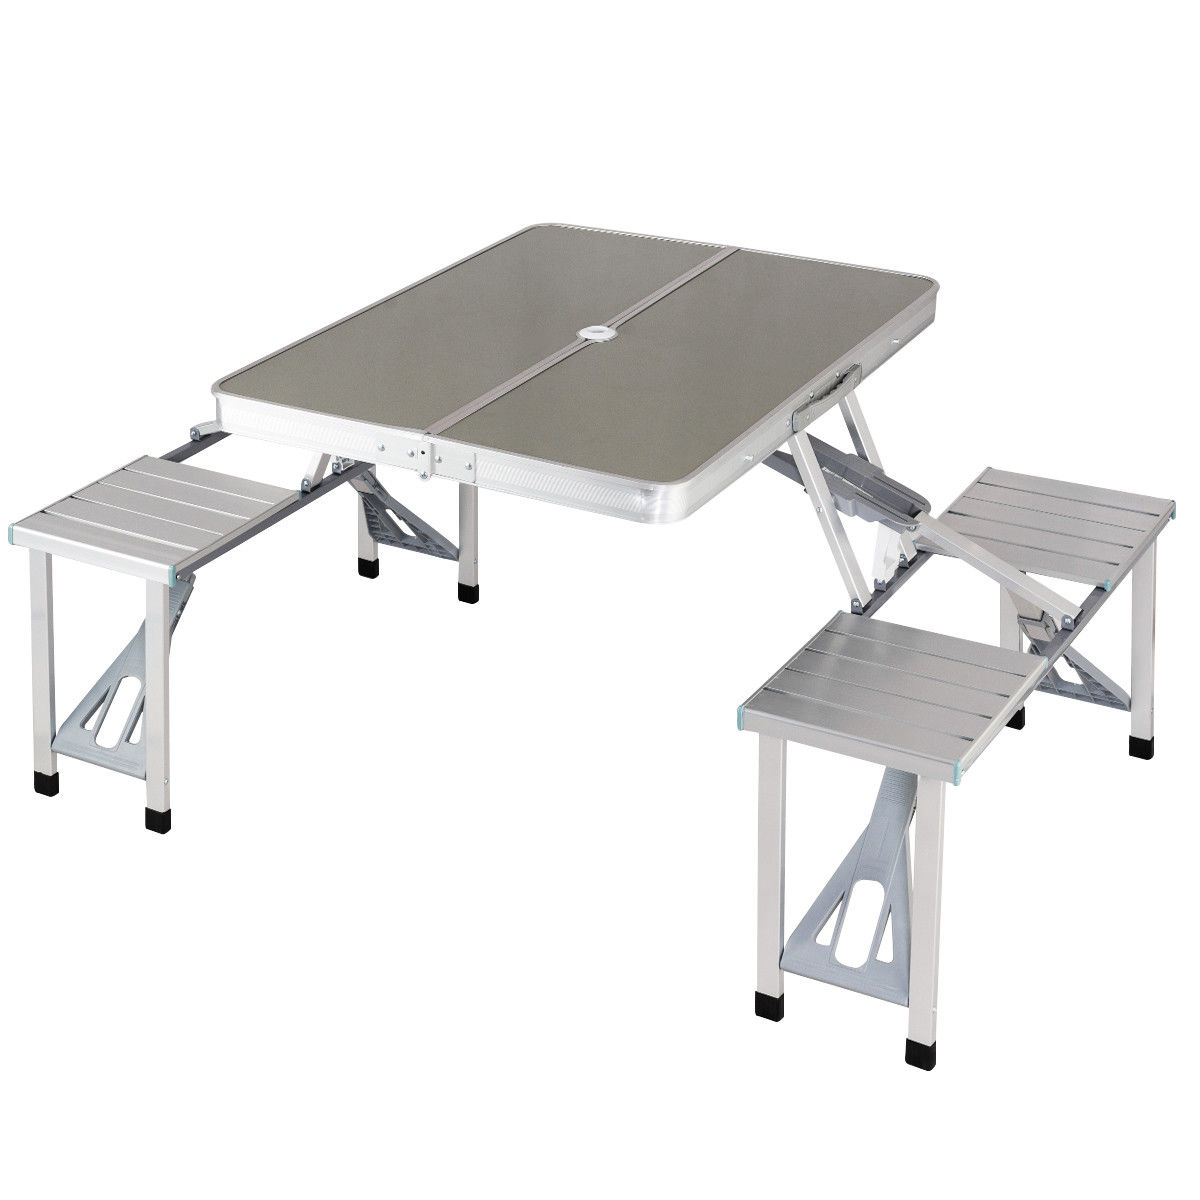 Costway Aluminum Portable Folding Picnic Table Camping Suitcase W Bench 4 Seat Outdoor